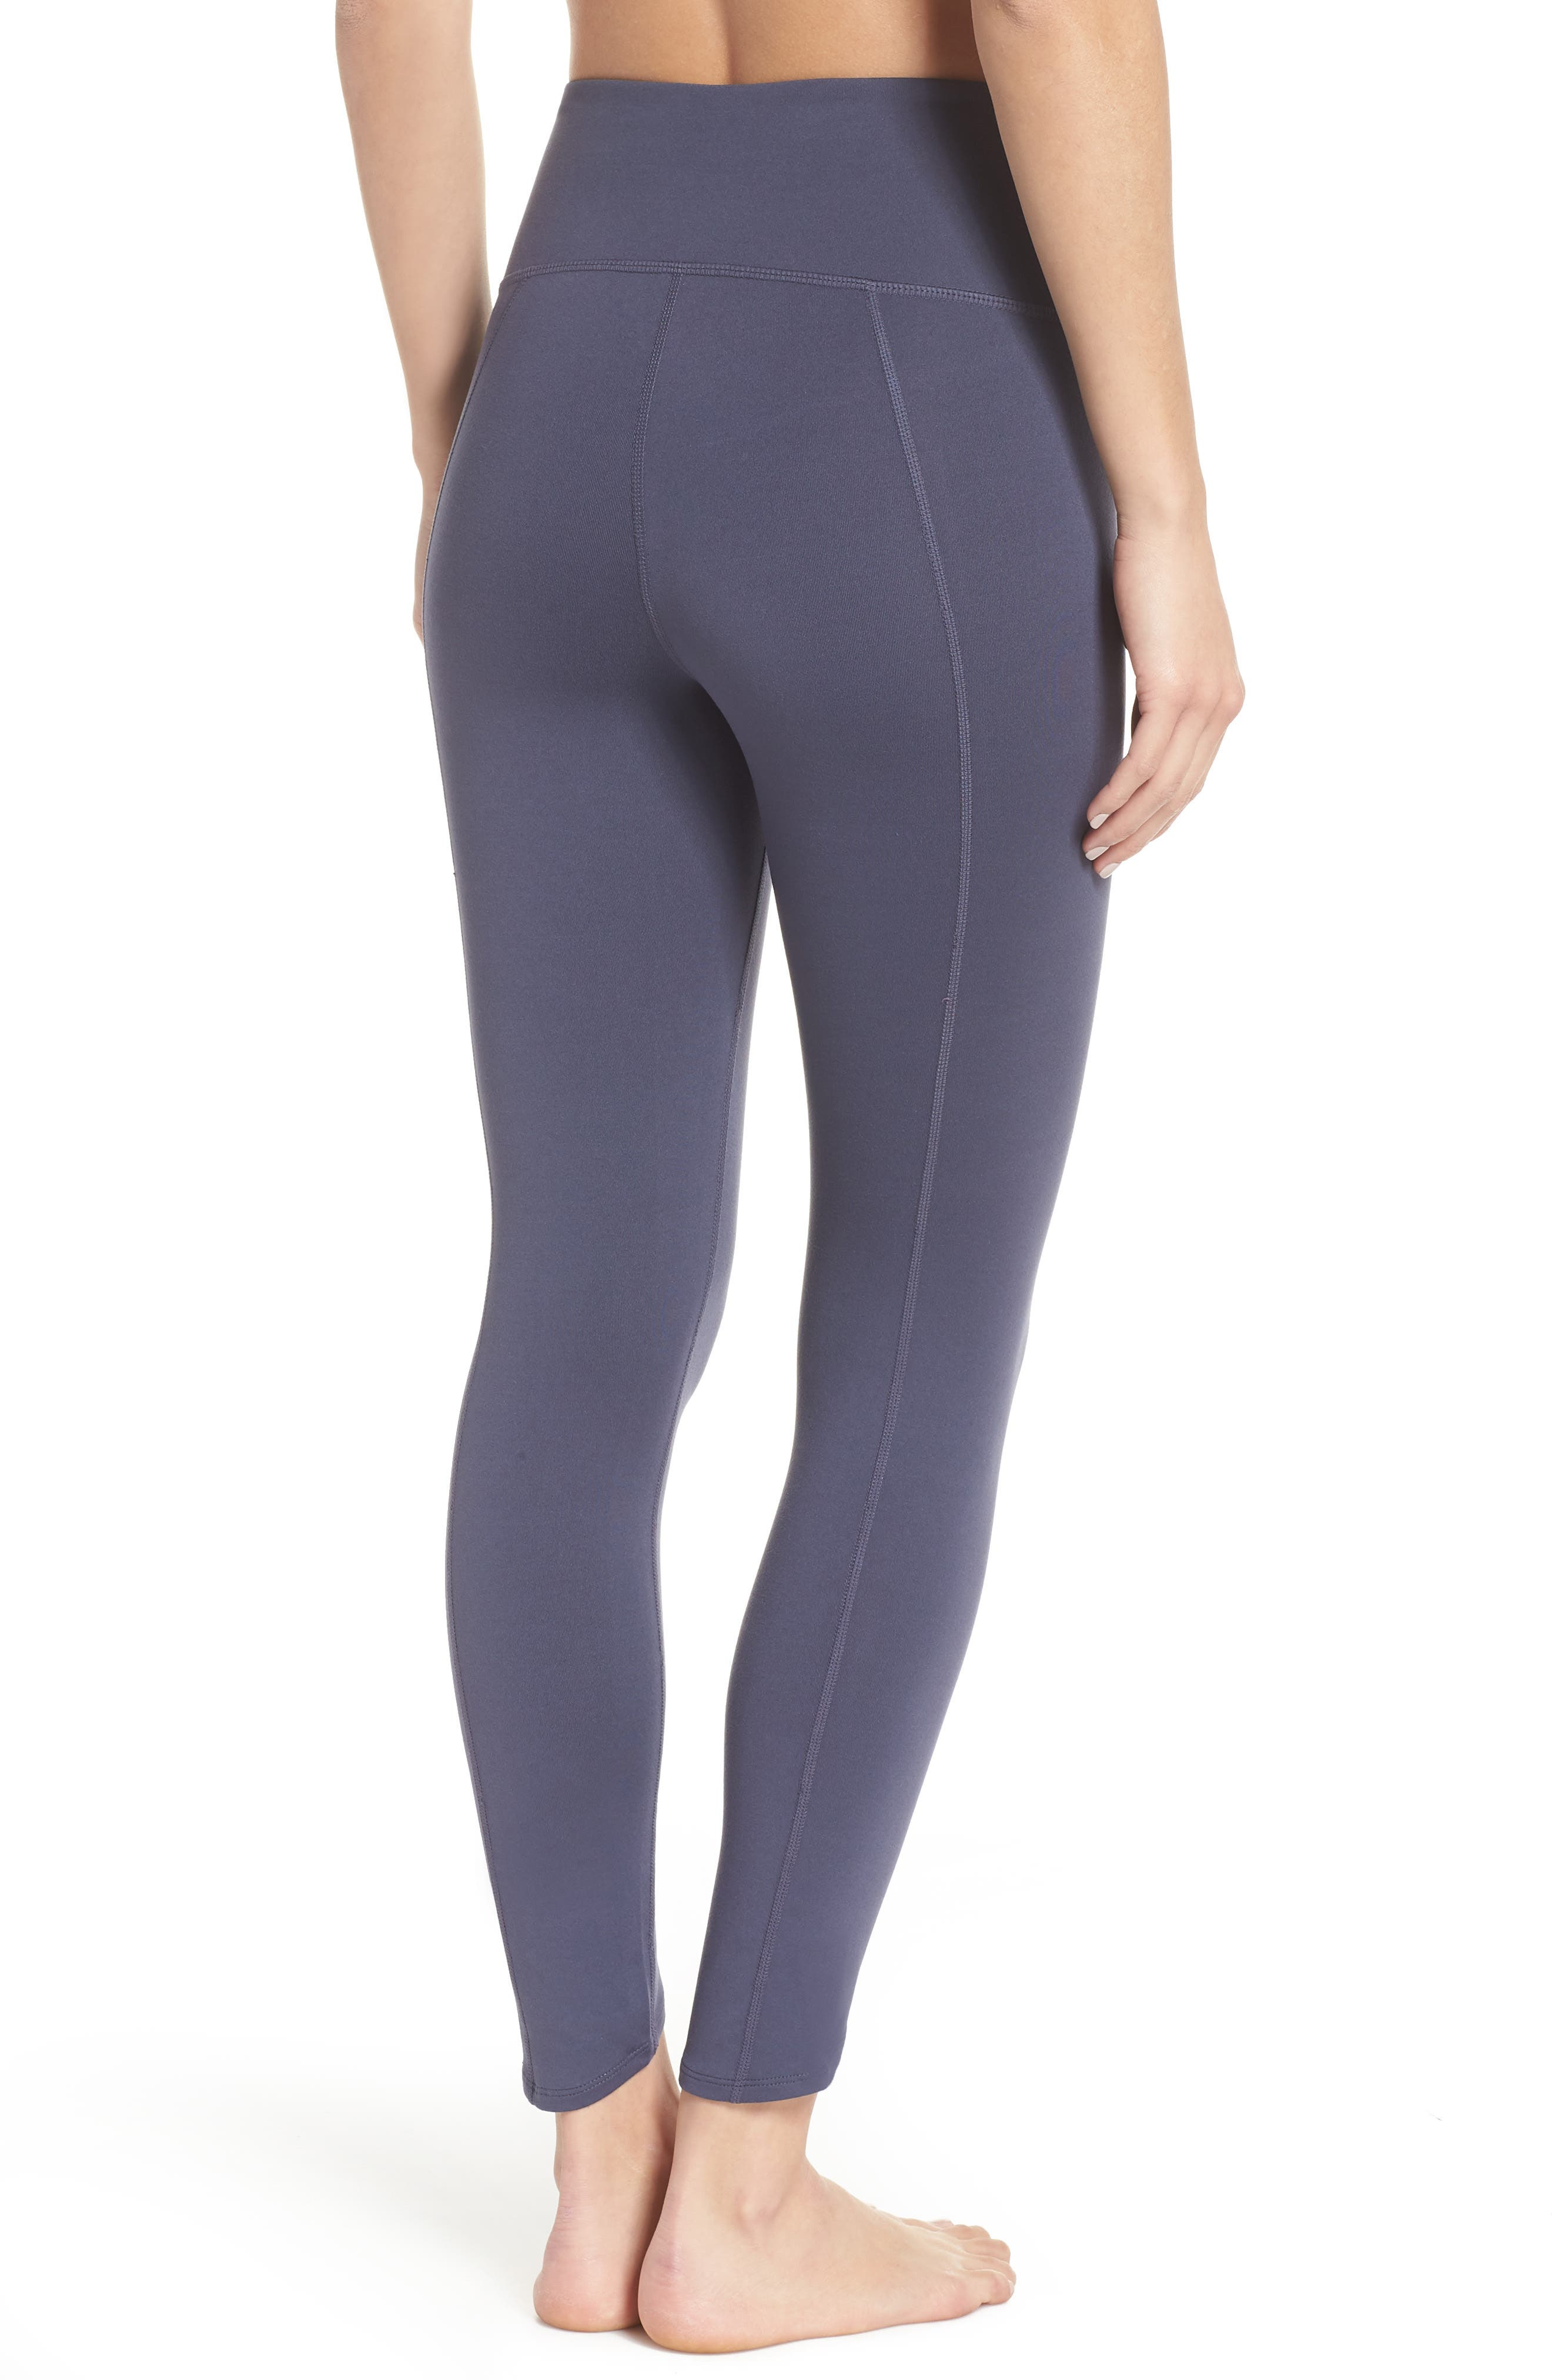 Refocus Recycled High Waist Midi Leggings,                             Alternate thumbnail 2, color,                             021